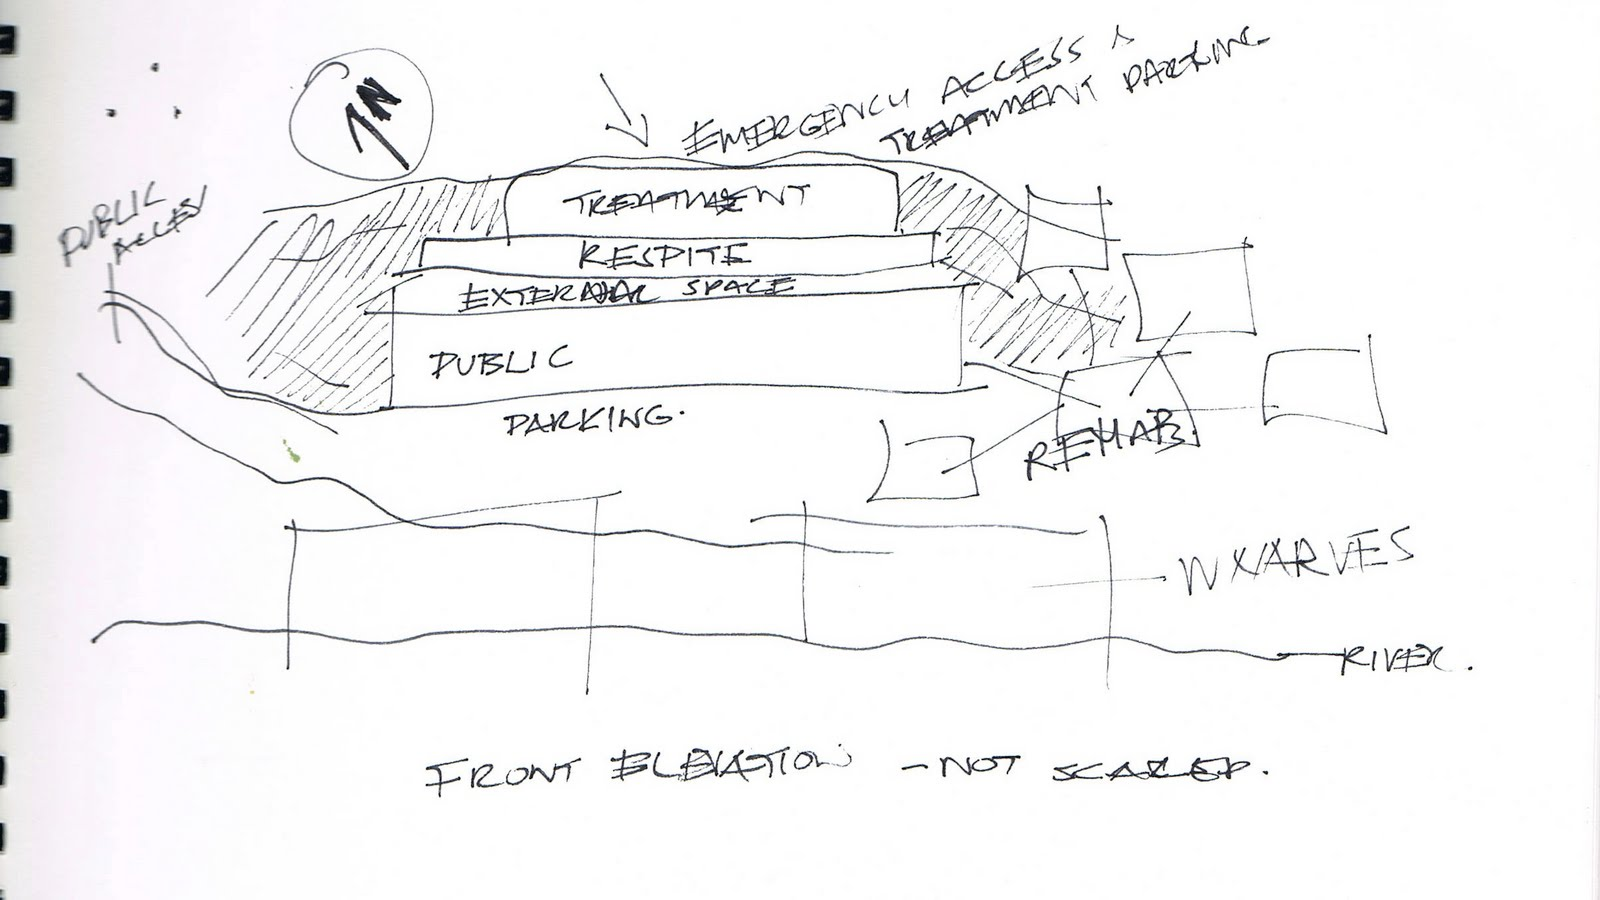 Architectural Design 5 Program Layout Design